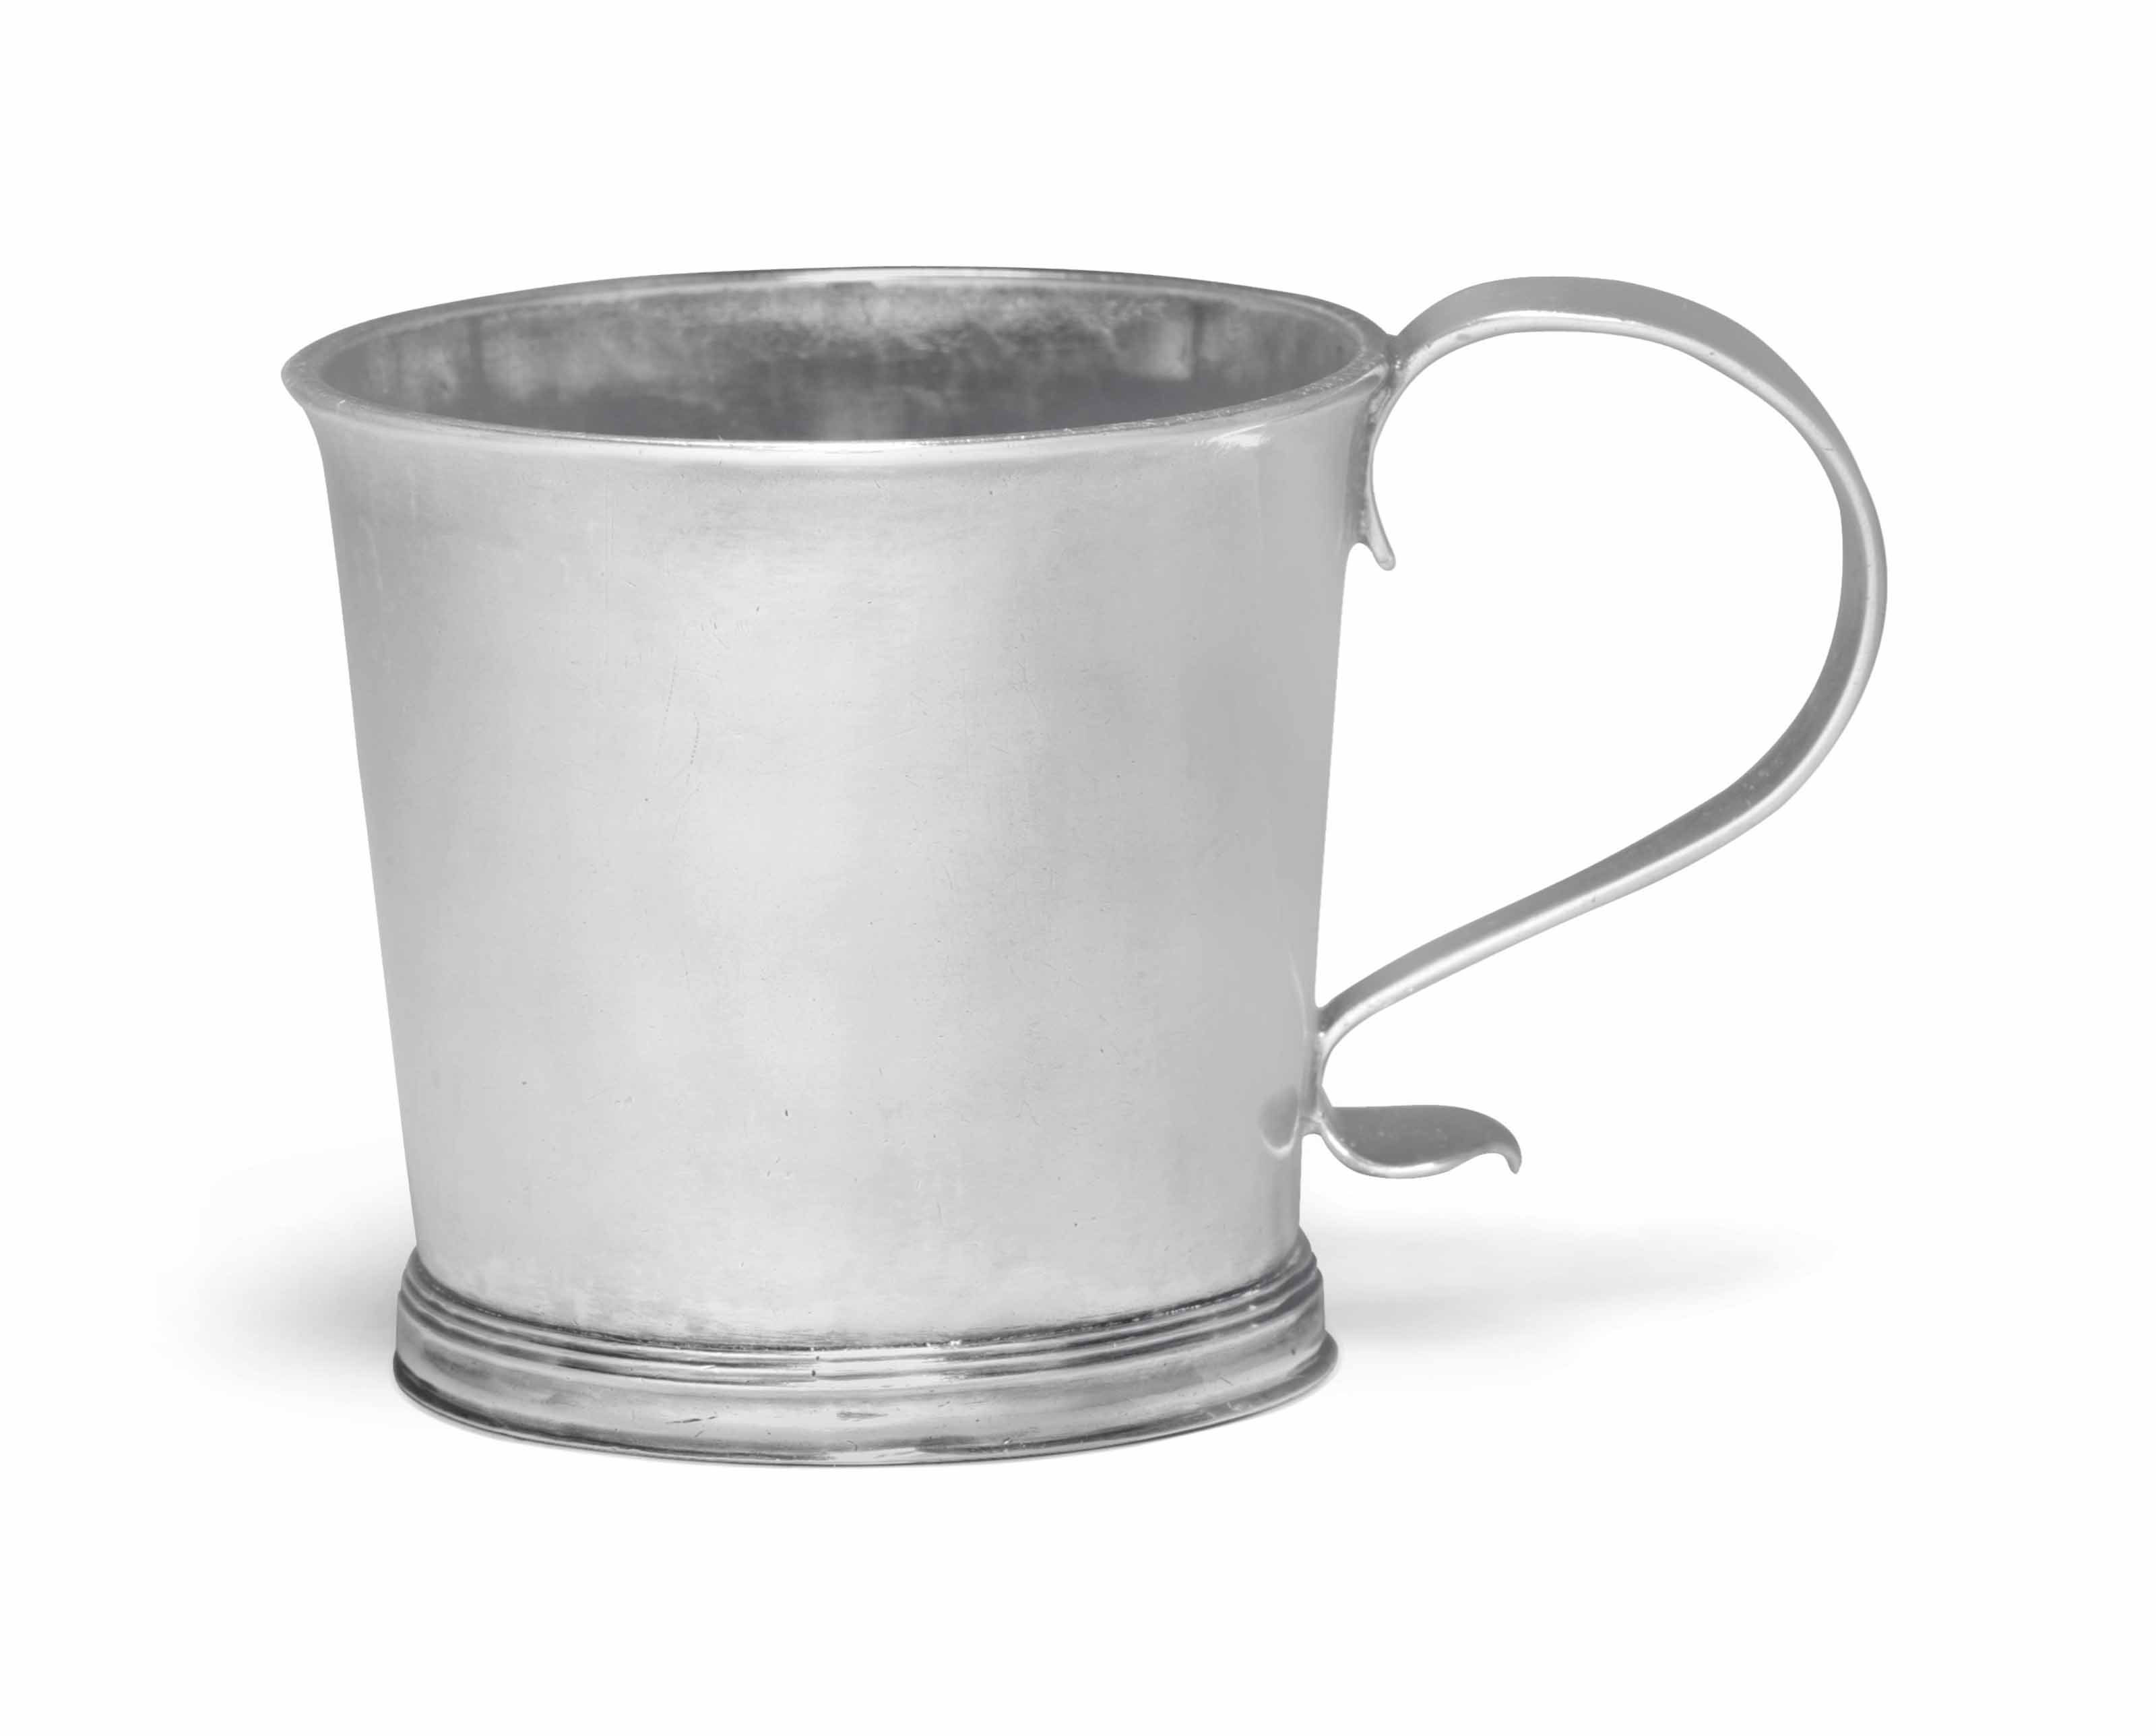 A SILVER CHILD'S CUP